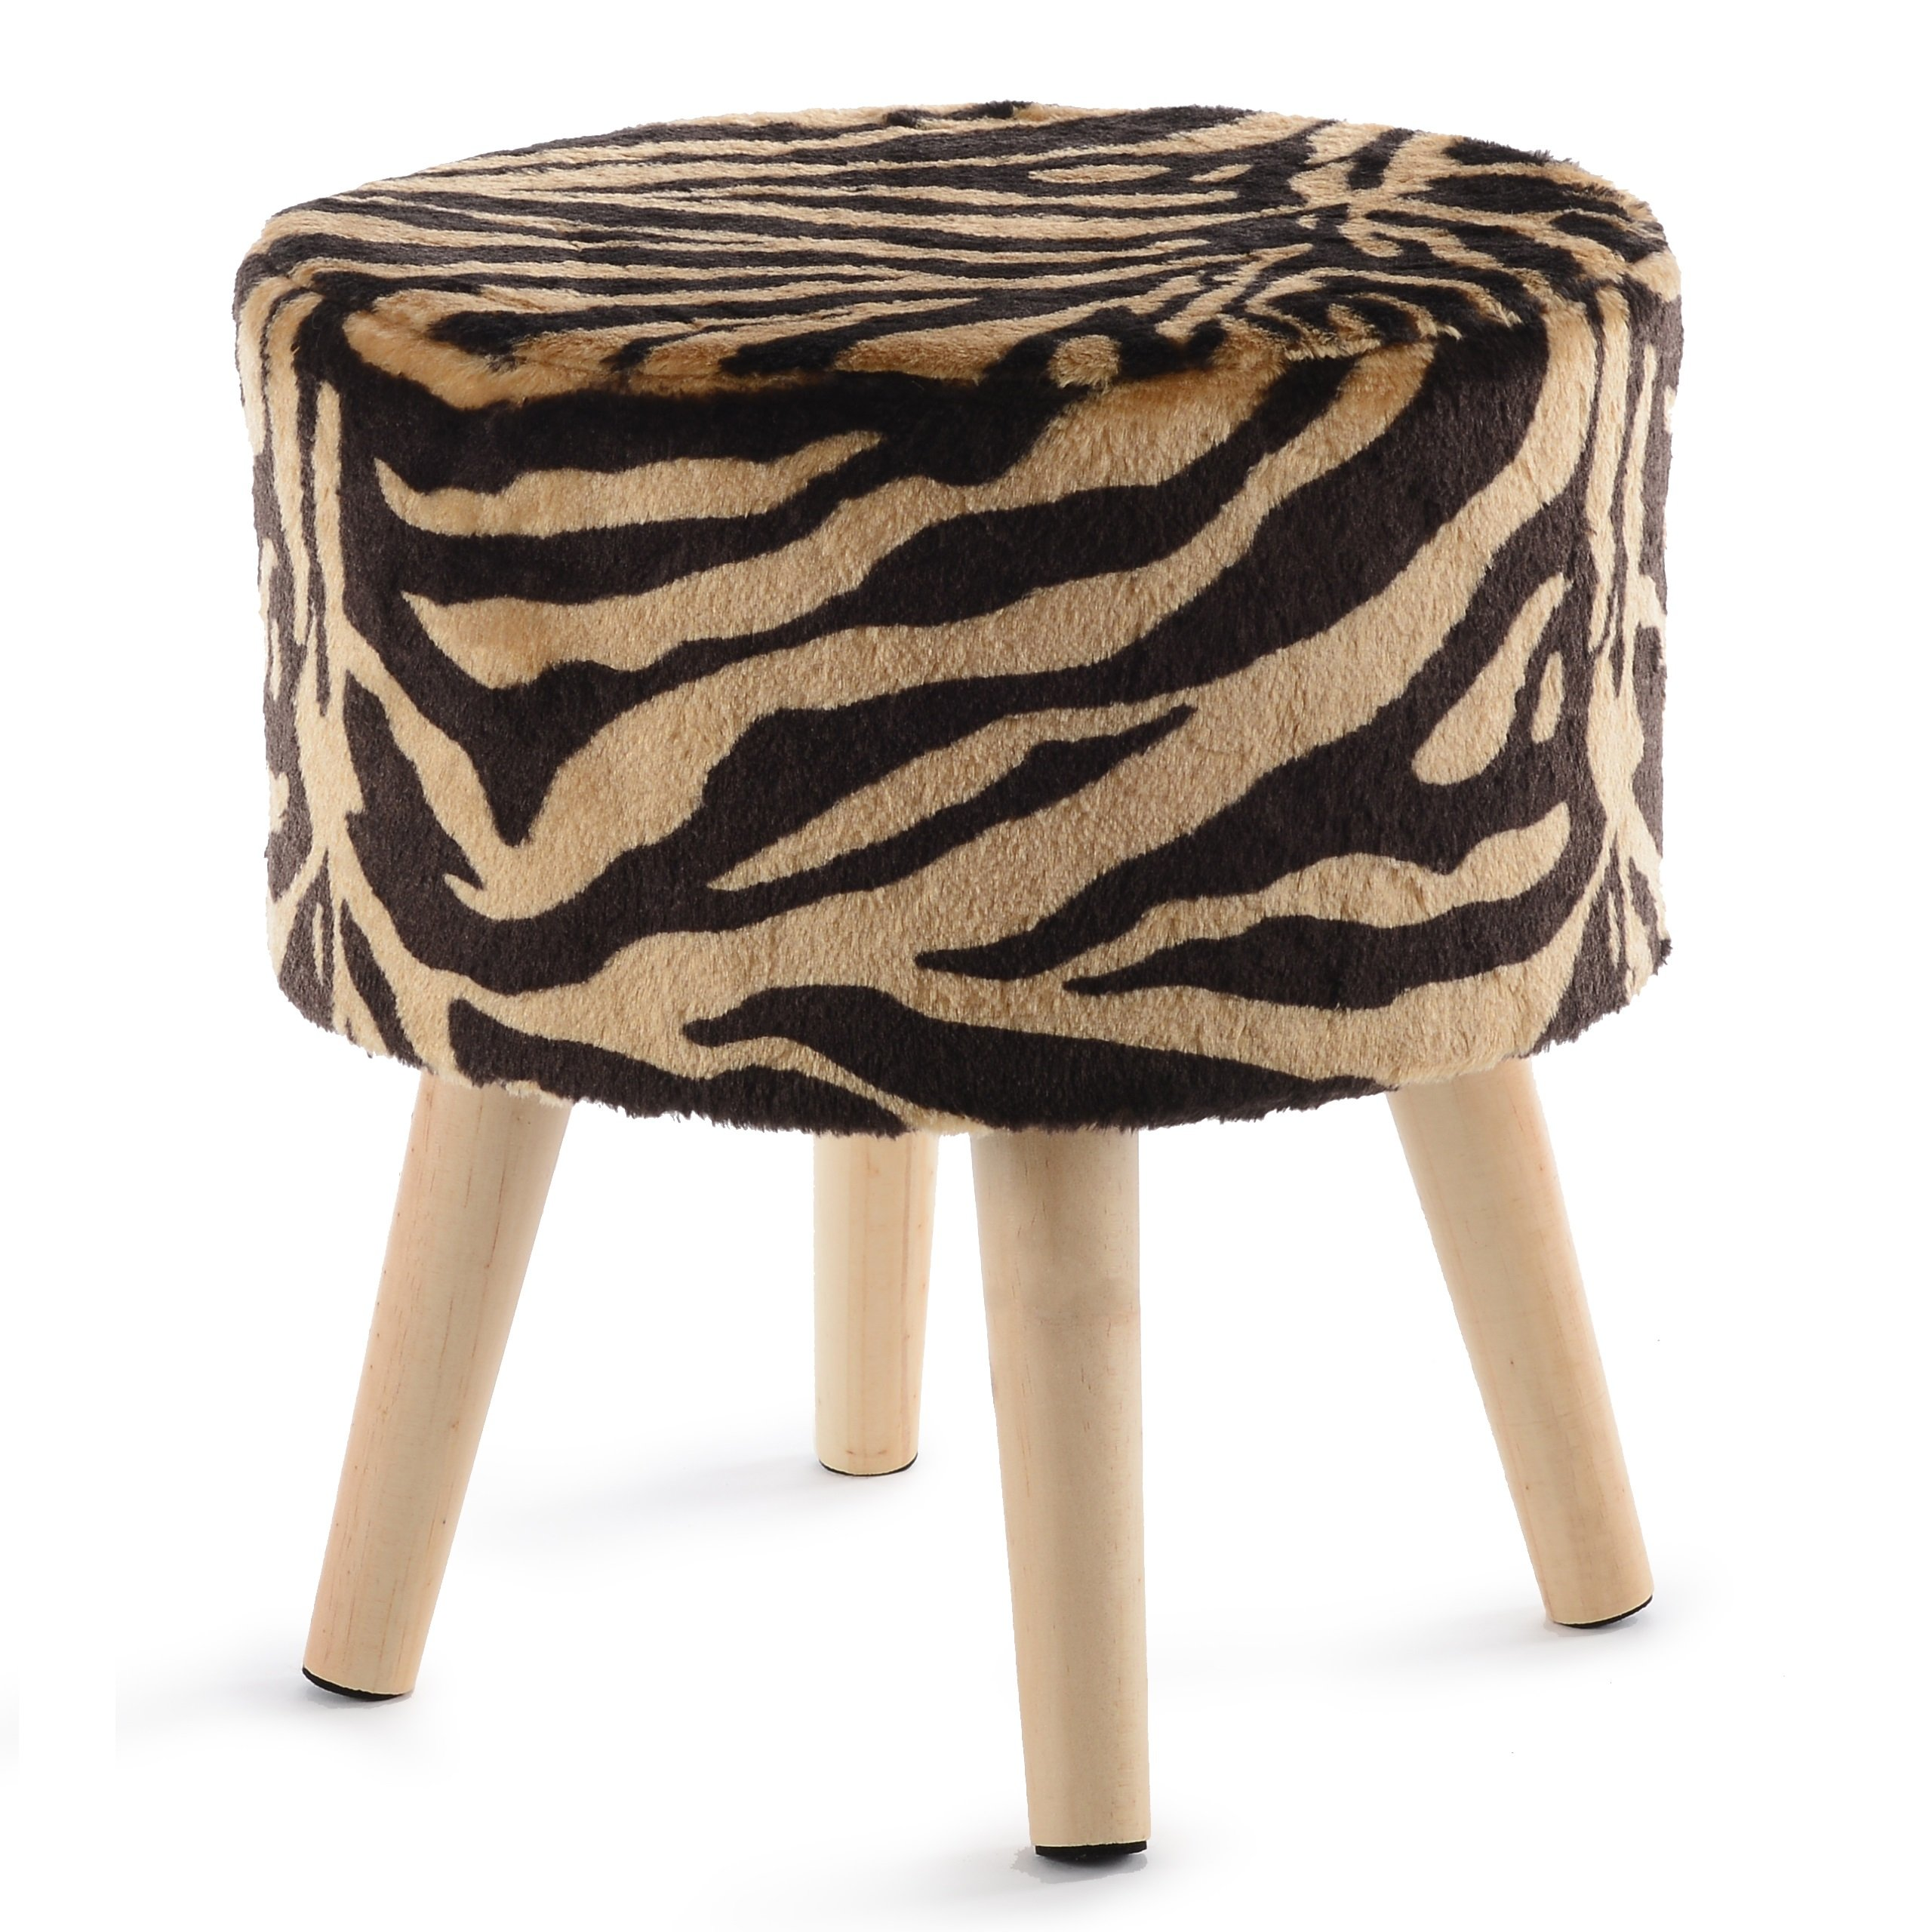 Cheer Collection 13'' Round Ottoman | Super Soft Decorative Tiger Print Faux Fur Foot Stool with Wood Legs by Cheer Collection (Image #1)